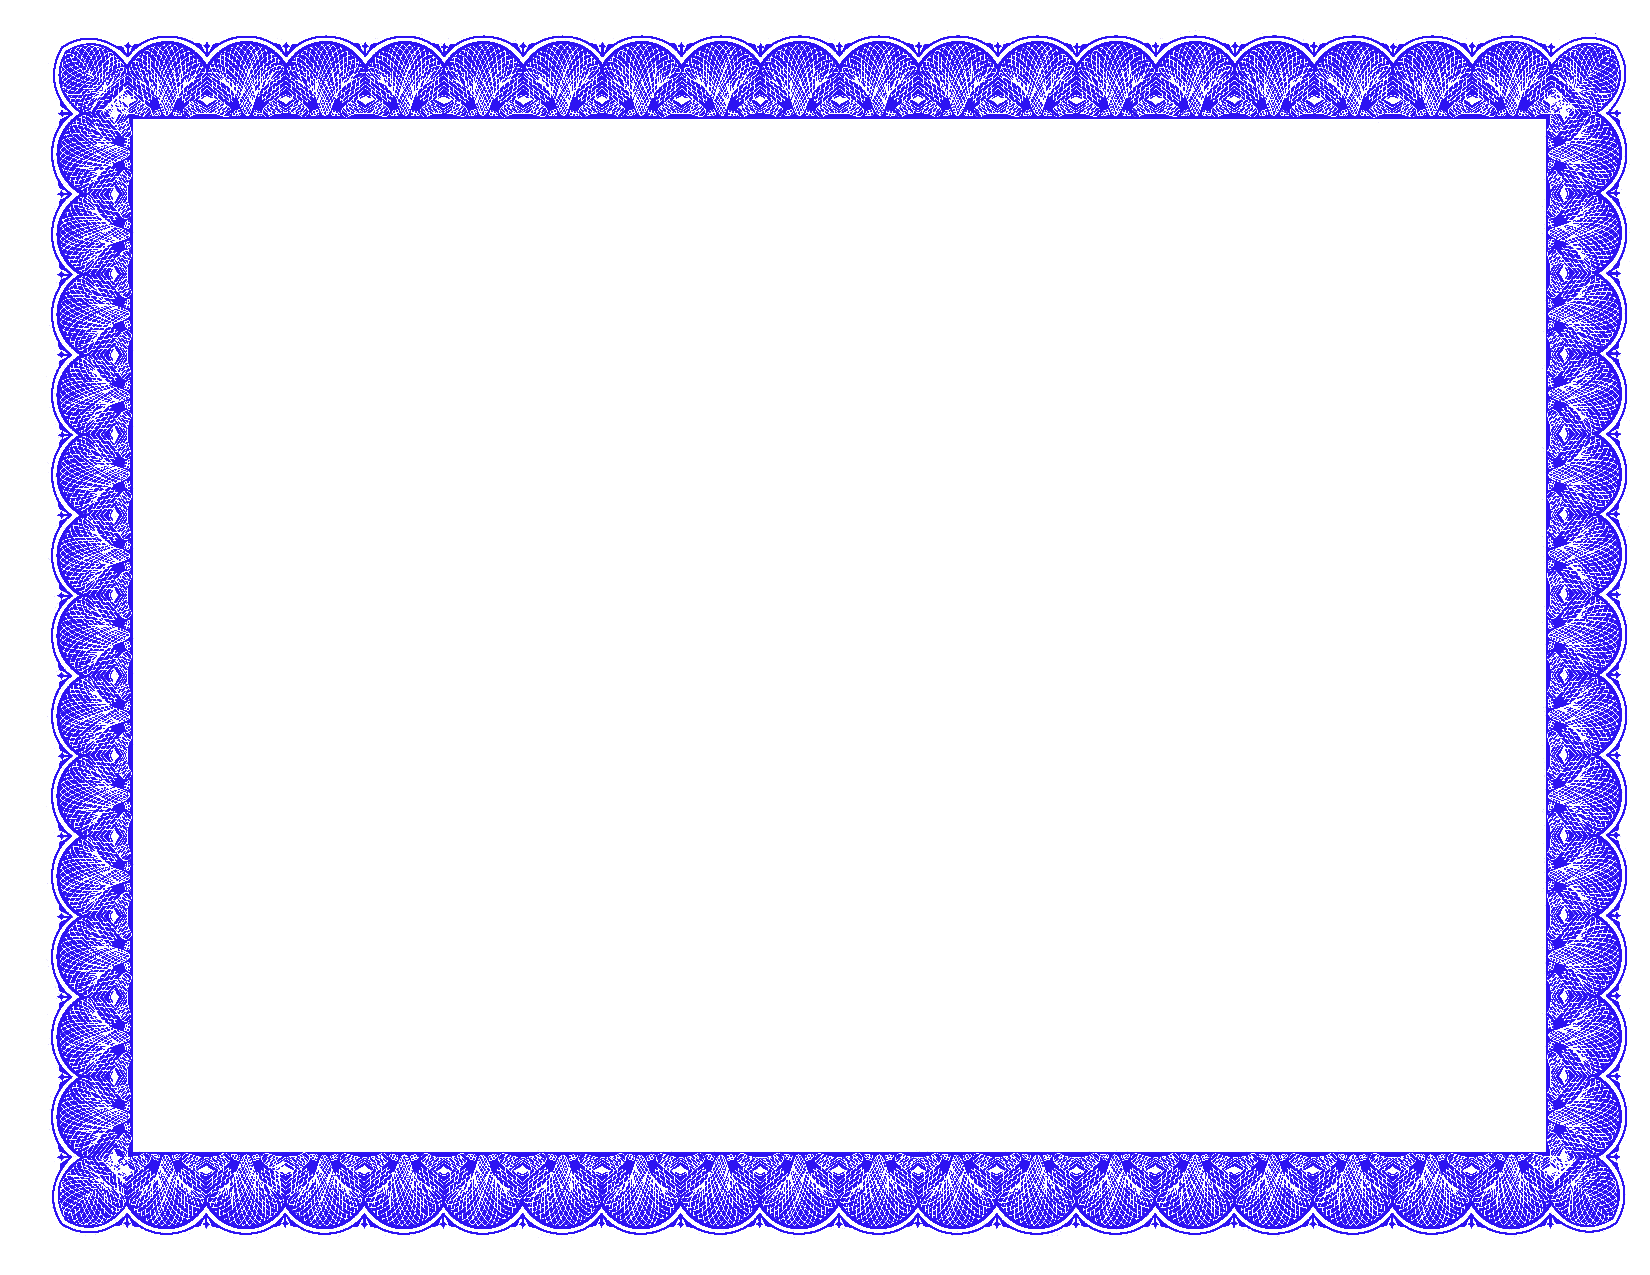 Png certificate borders. Fancy photoshopforums com blue